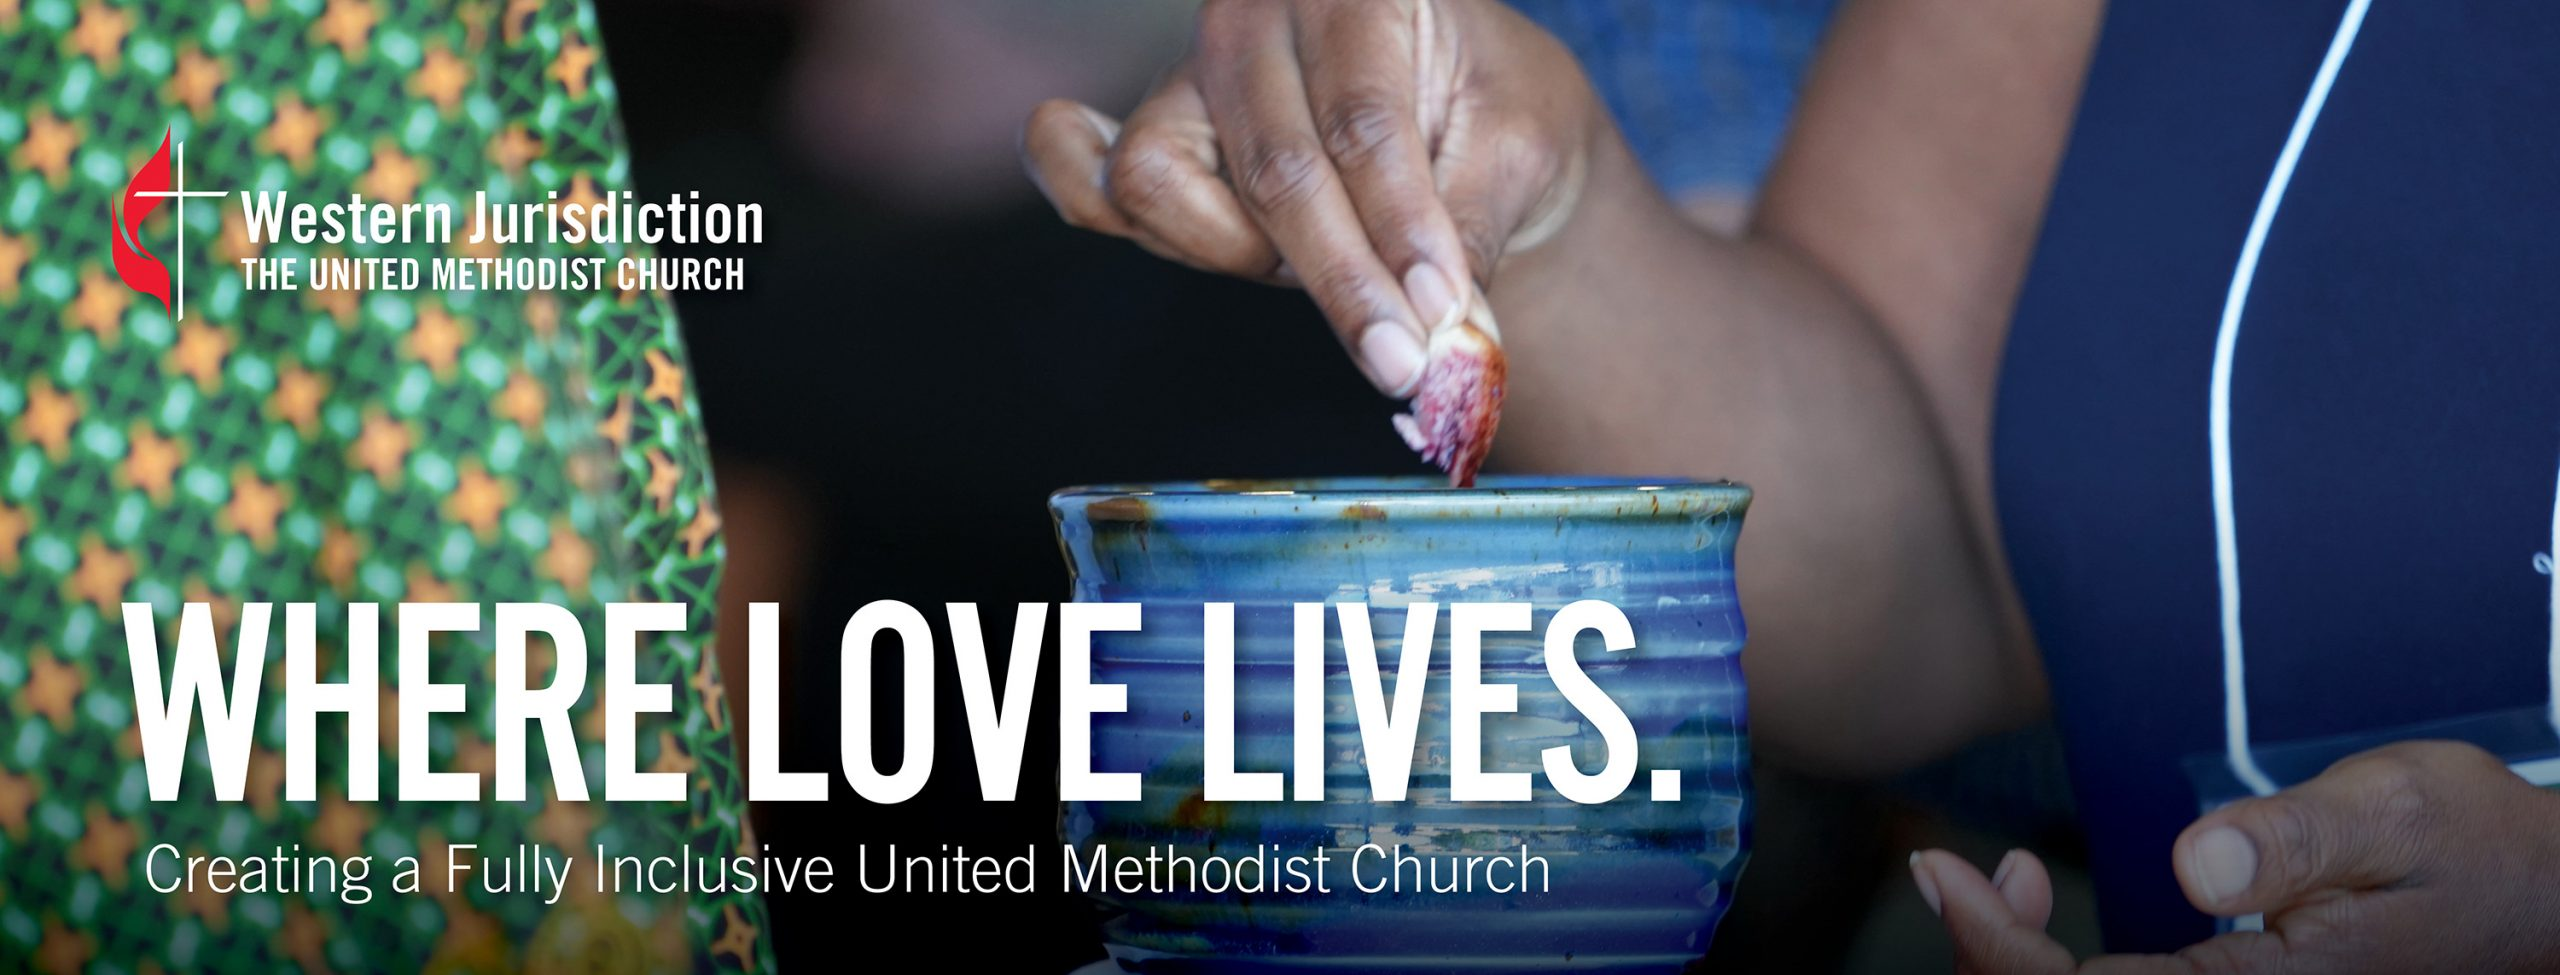 Find the latest posts and resources from the Where Love Lives campaign